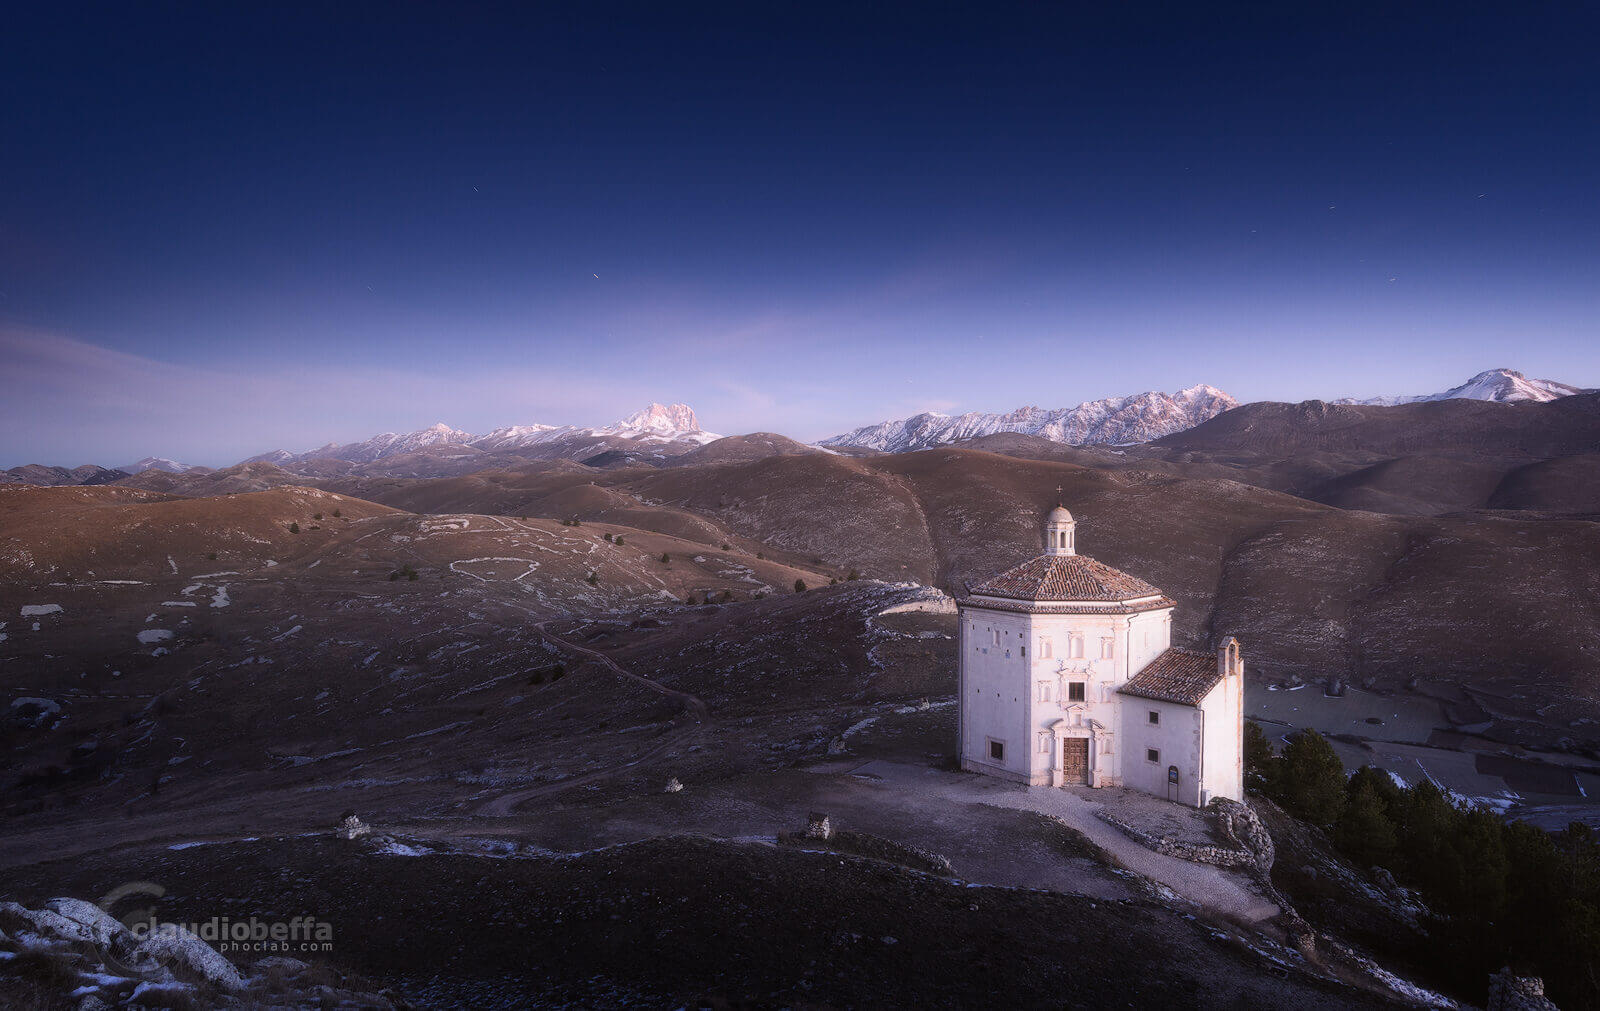 Winter silence, Rocca Calascio, Abruzzo, fortress, stronghold, italy, landscape, mountains, apennines, winter, sunrise, dawn